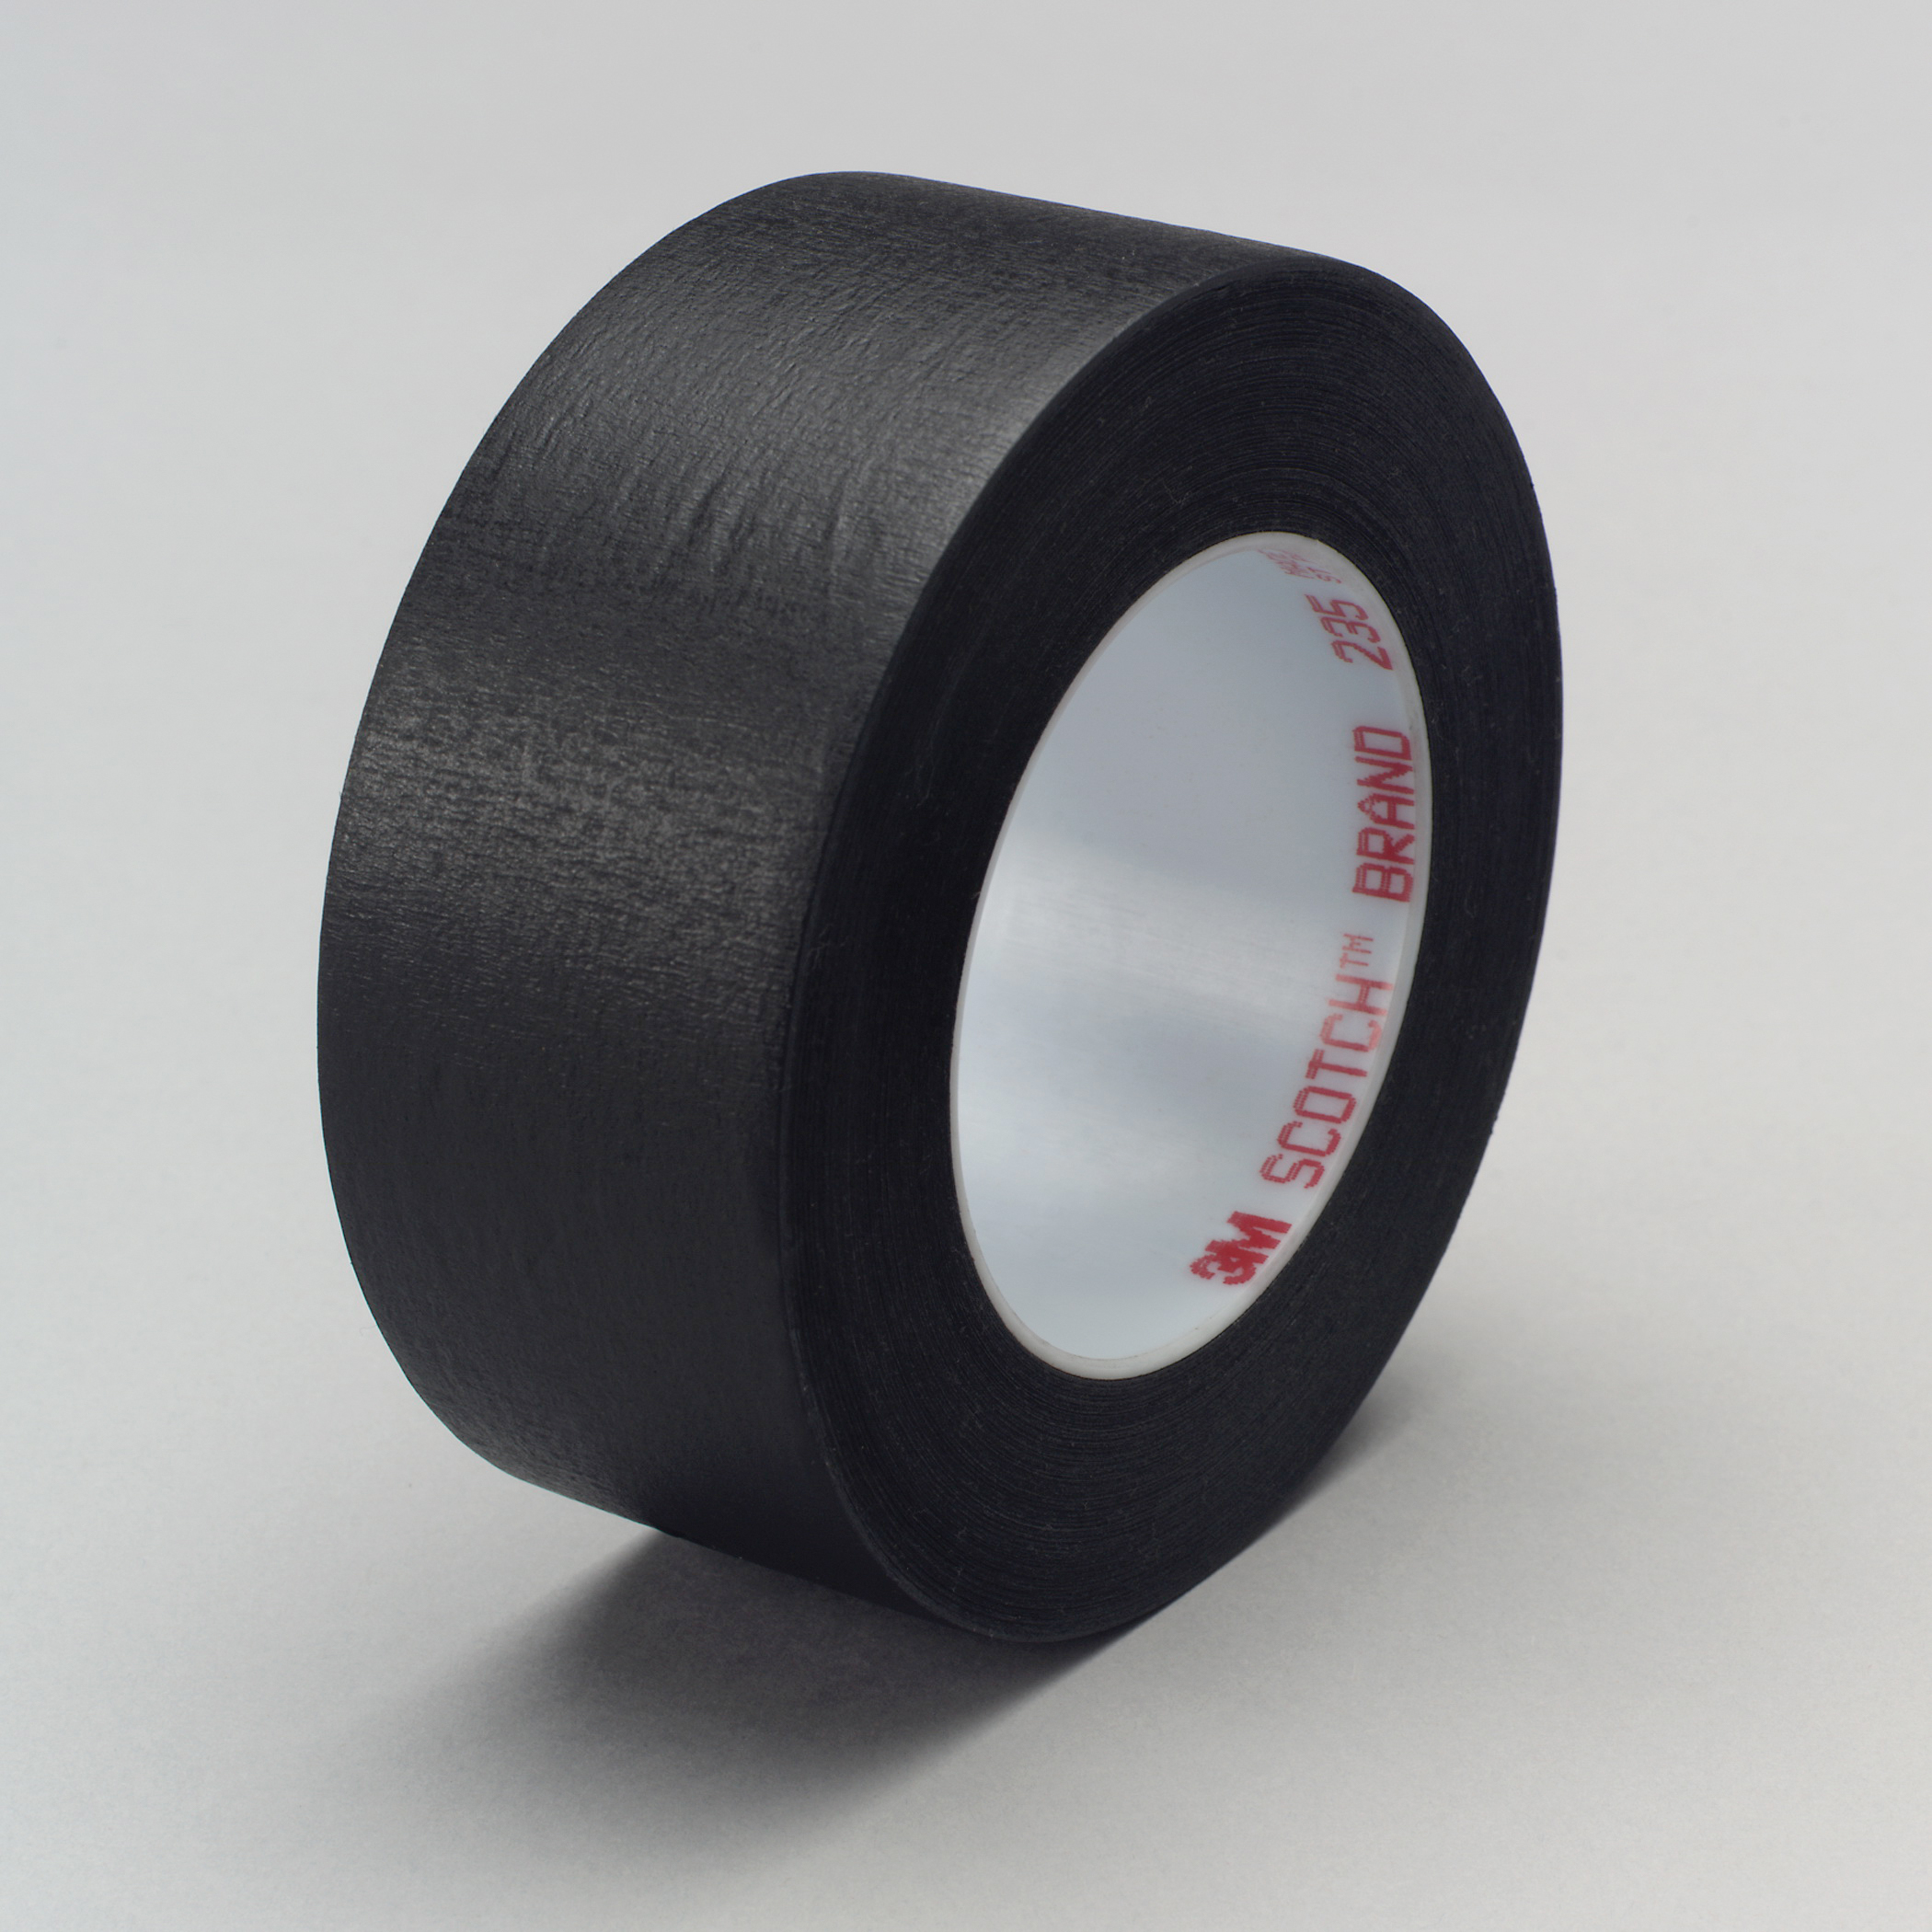 3M™ 021200-02838 Photographic Tape, 60 yd L x 1/2 in W, 7 mil THK, Rubber Adhesive, Crepe Paper Backing, Black